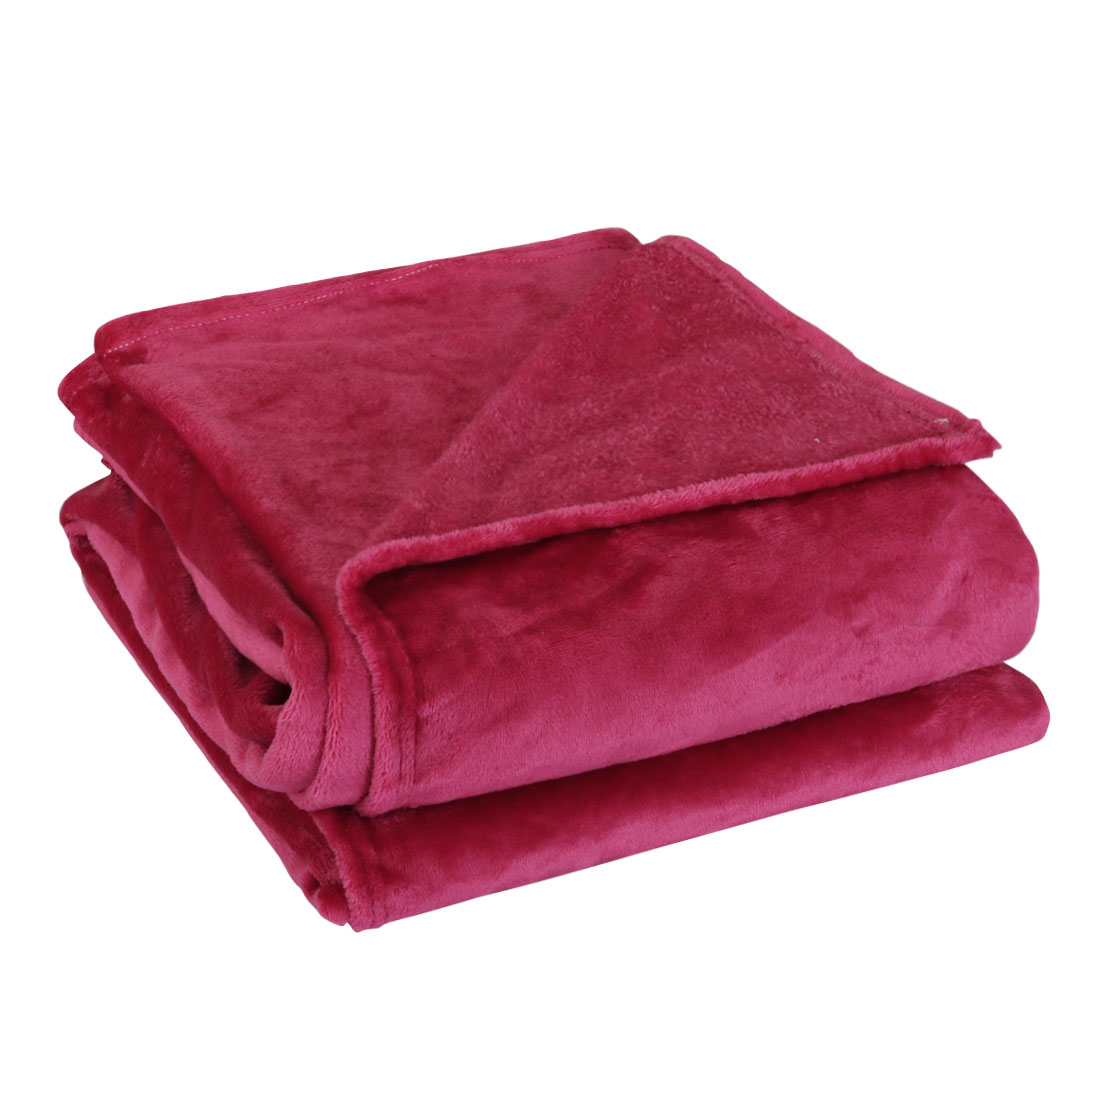 230 x 250cm Home Bedroom Warm Throw Blanket Rug Plush Fleece Bed Quilt Sofa Soft Pure Fuchsia